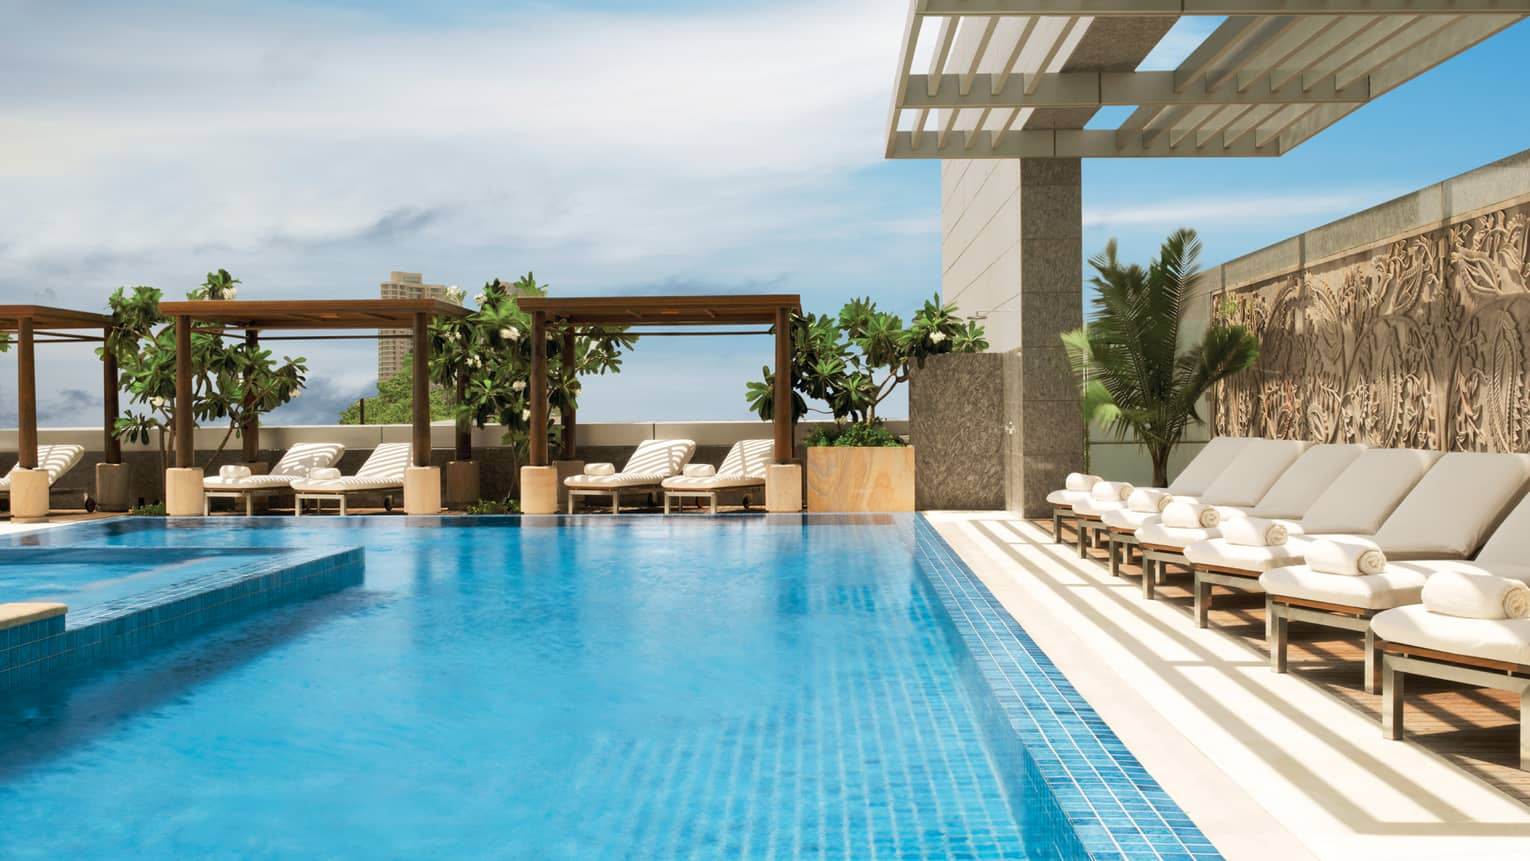 White lounge chairs under pergola by sunny outdoor swimming pool